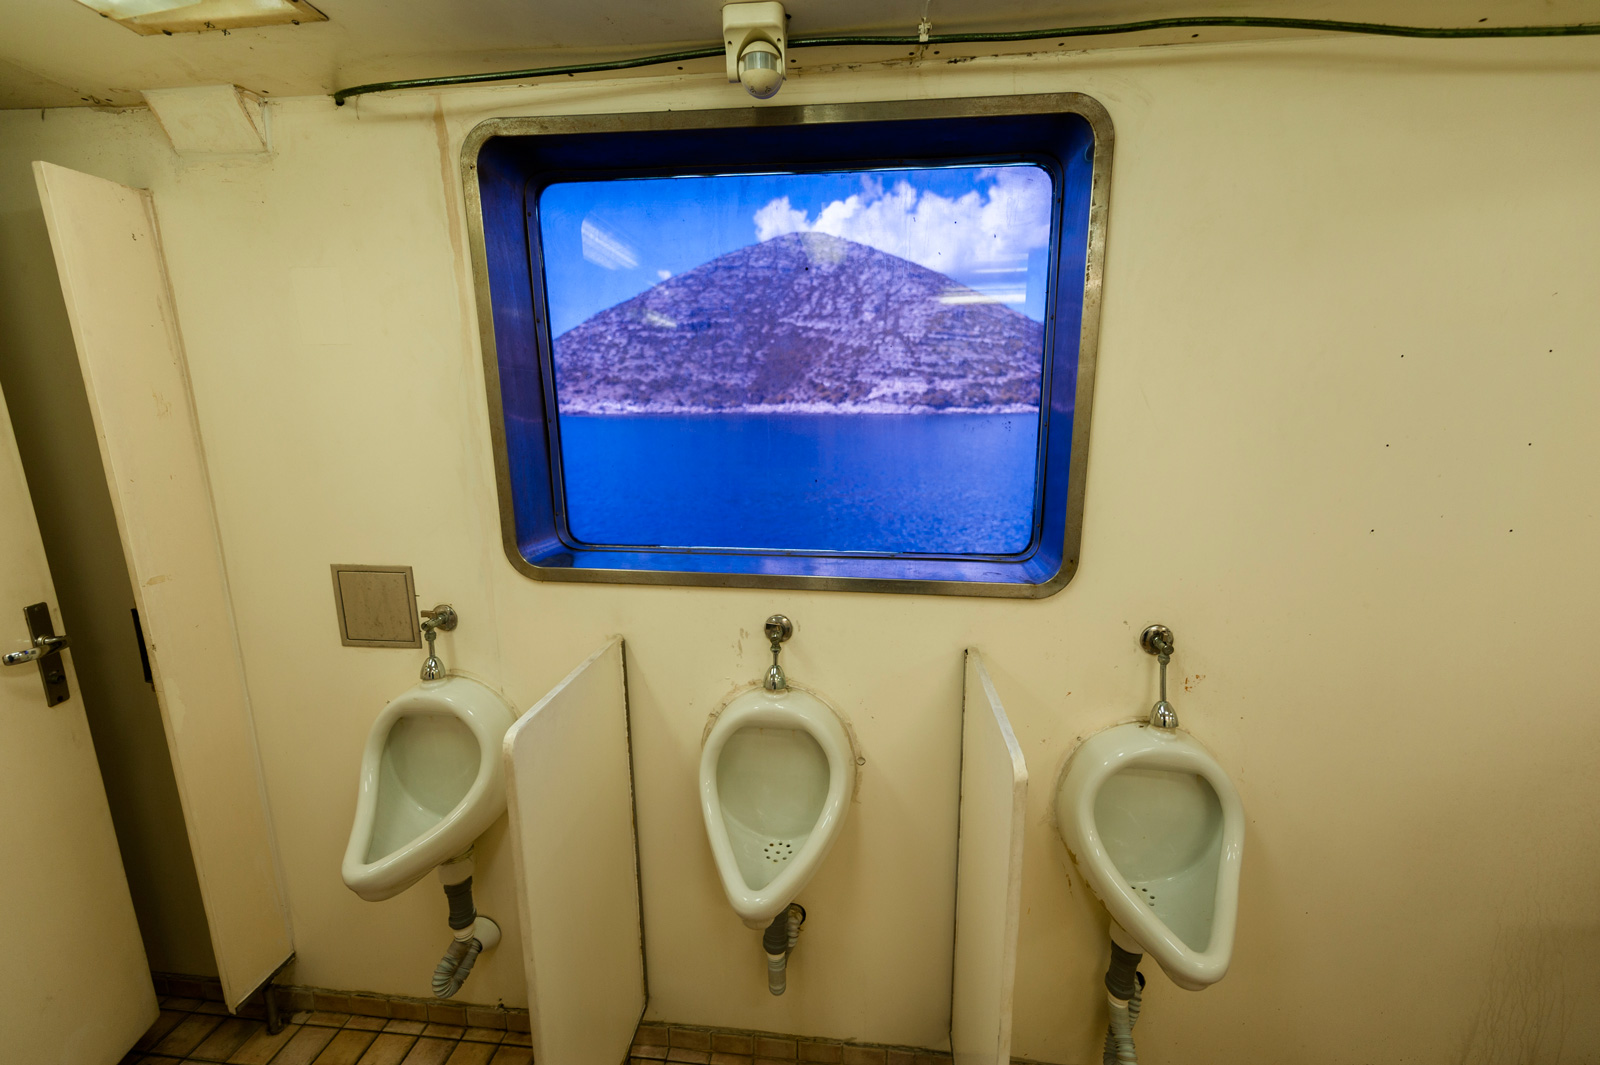 Toilets with views.